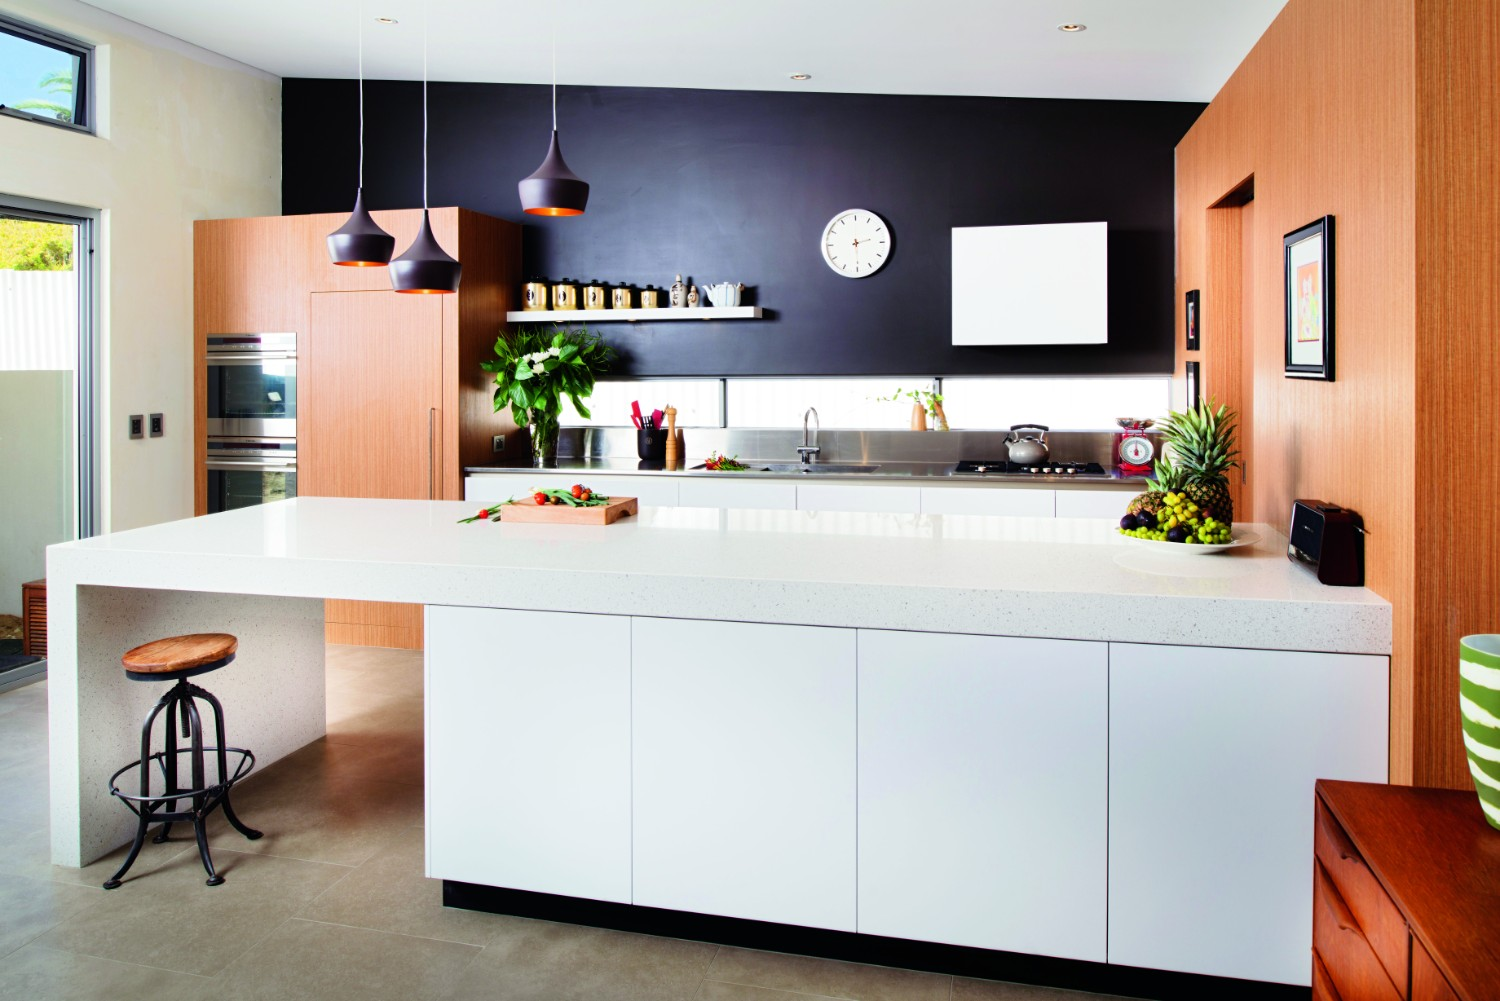 Tall Order: A simply stunning WA kitchen design - Completehome